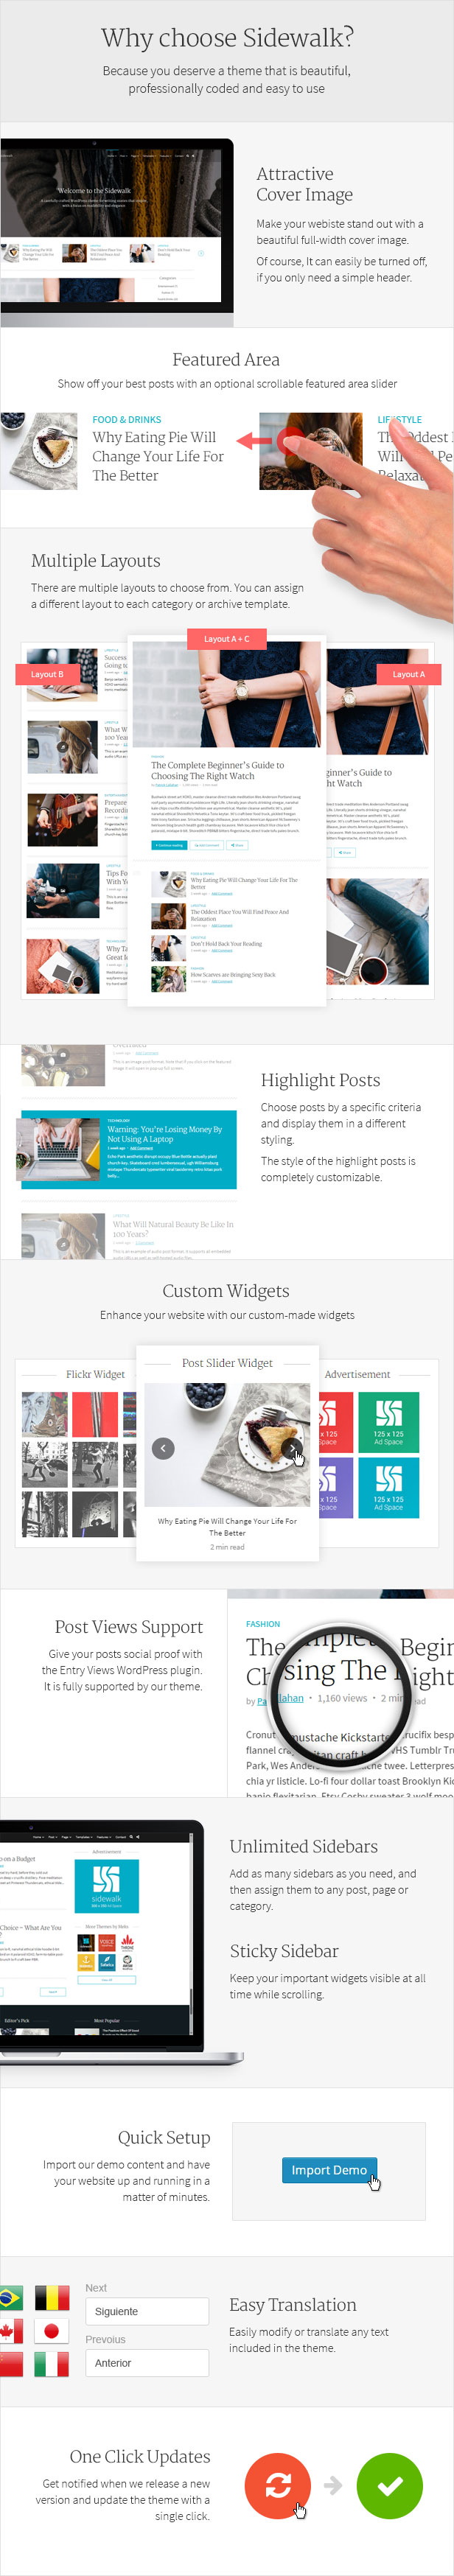 Sidewalk - Elegant Personal Blog WordPress Theme by meks | ThemeForest